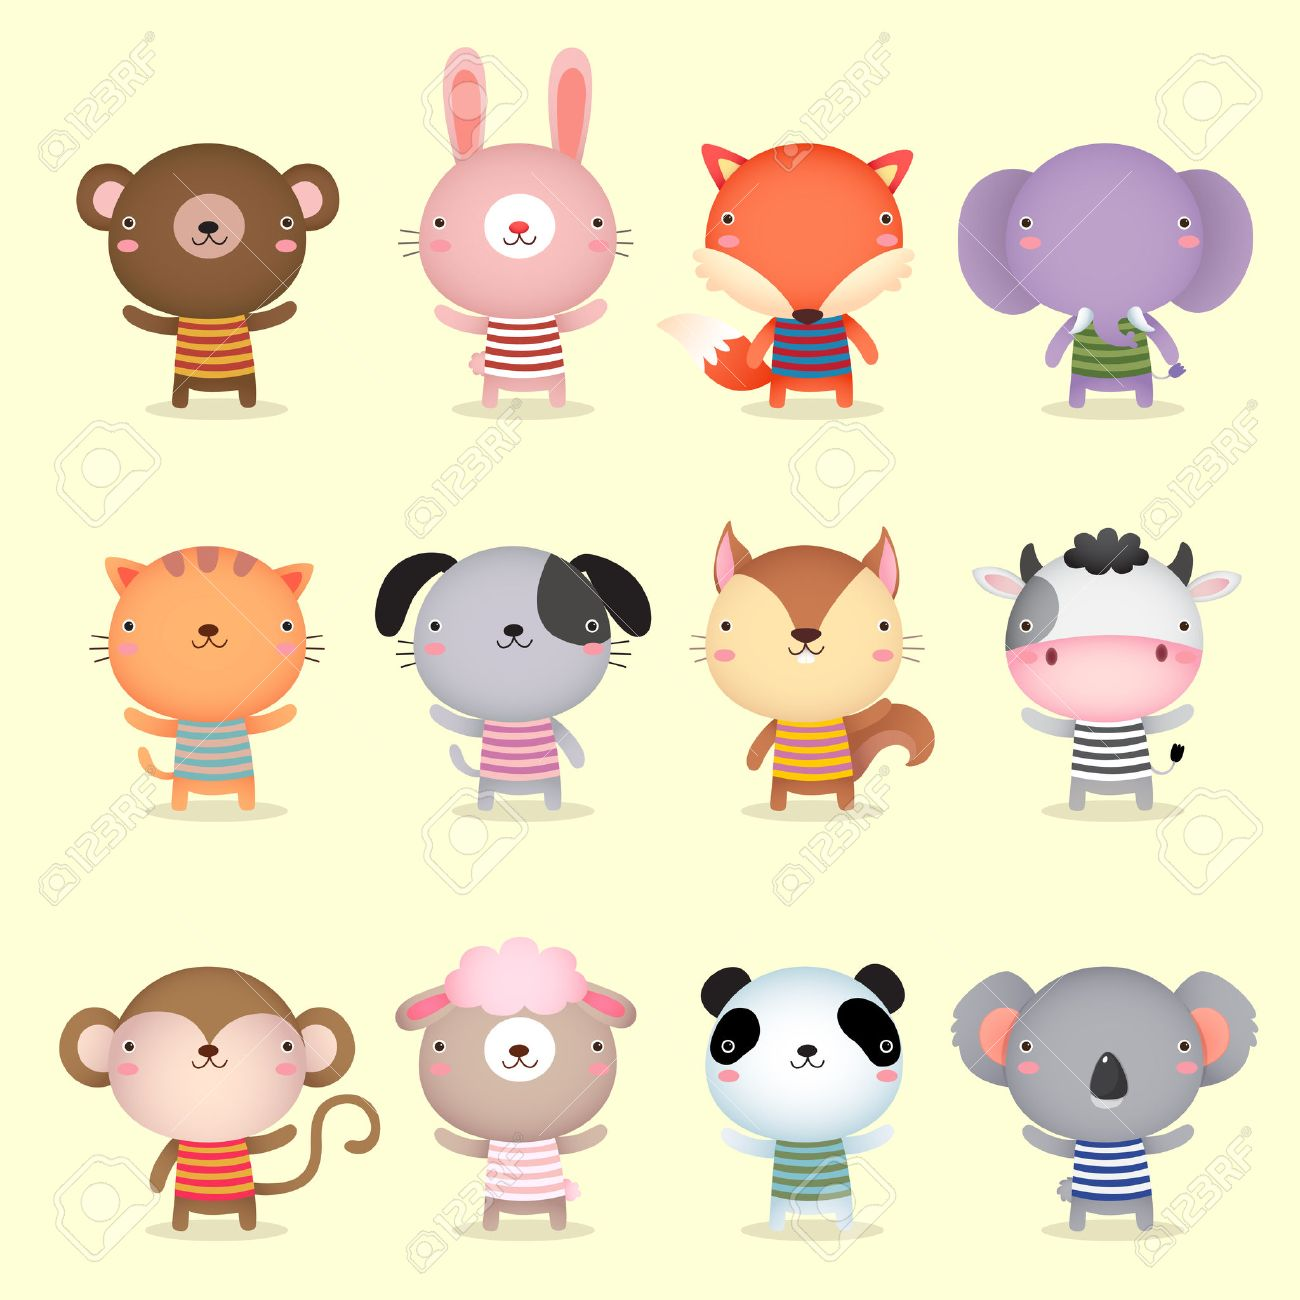 Illustration Of Cute Animals Collections Royalty Free Cliparts ...